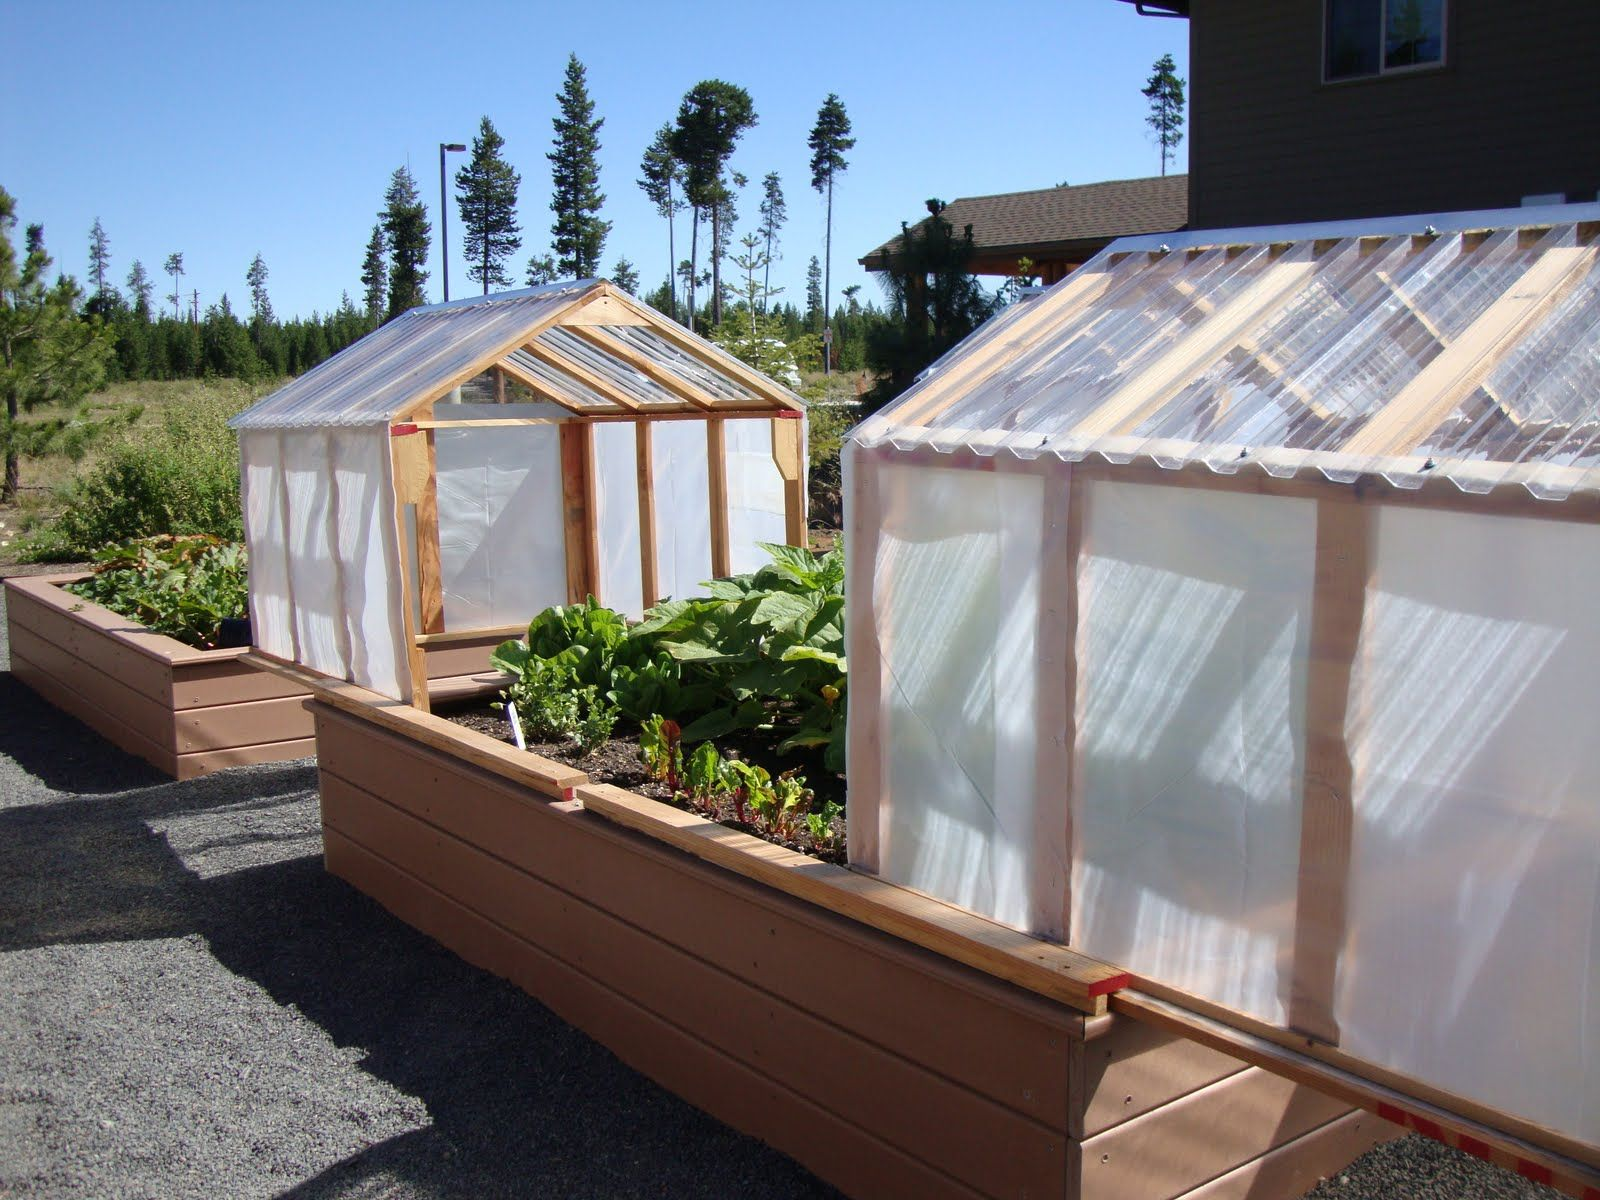 Minigreenhouses or raised beds? Both! Garden beds, Mini